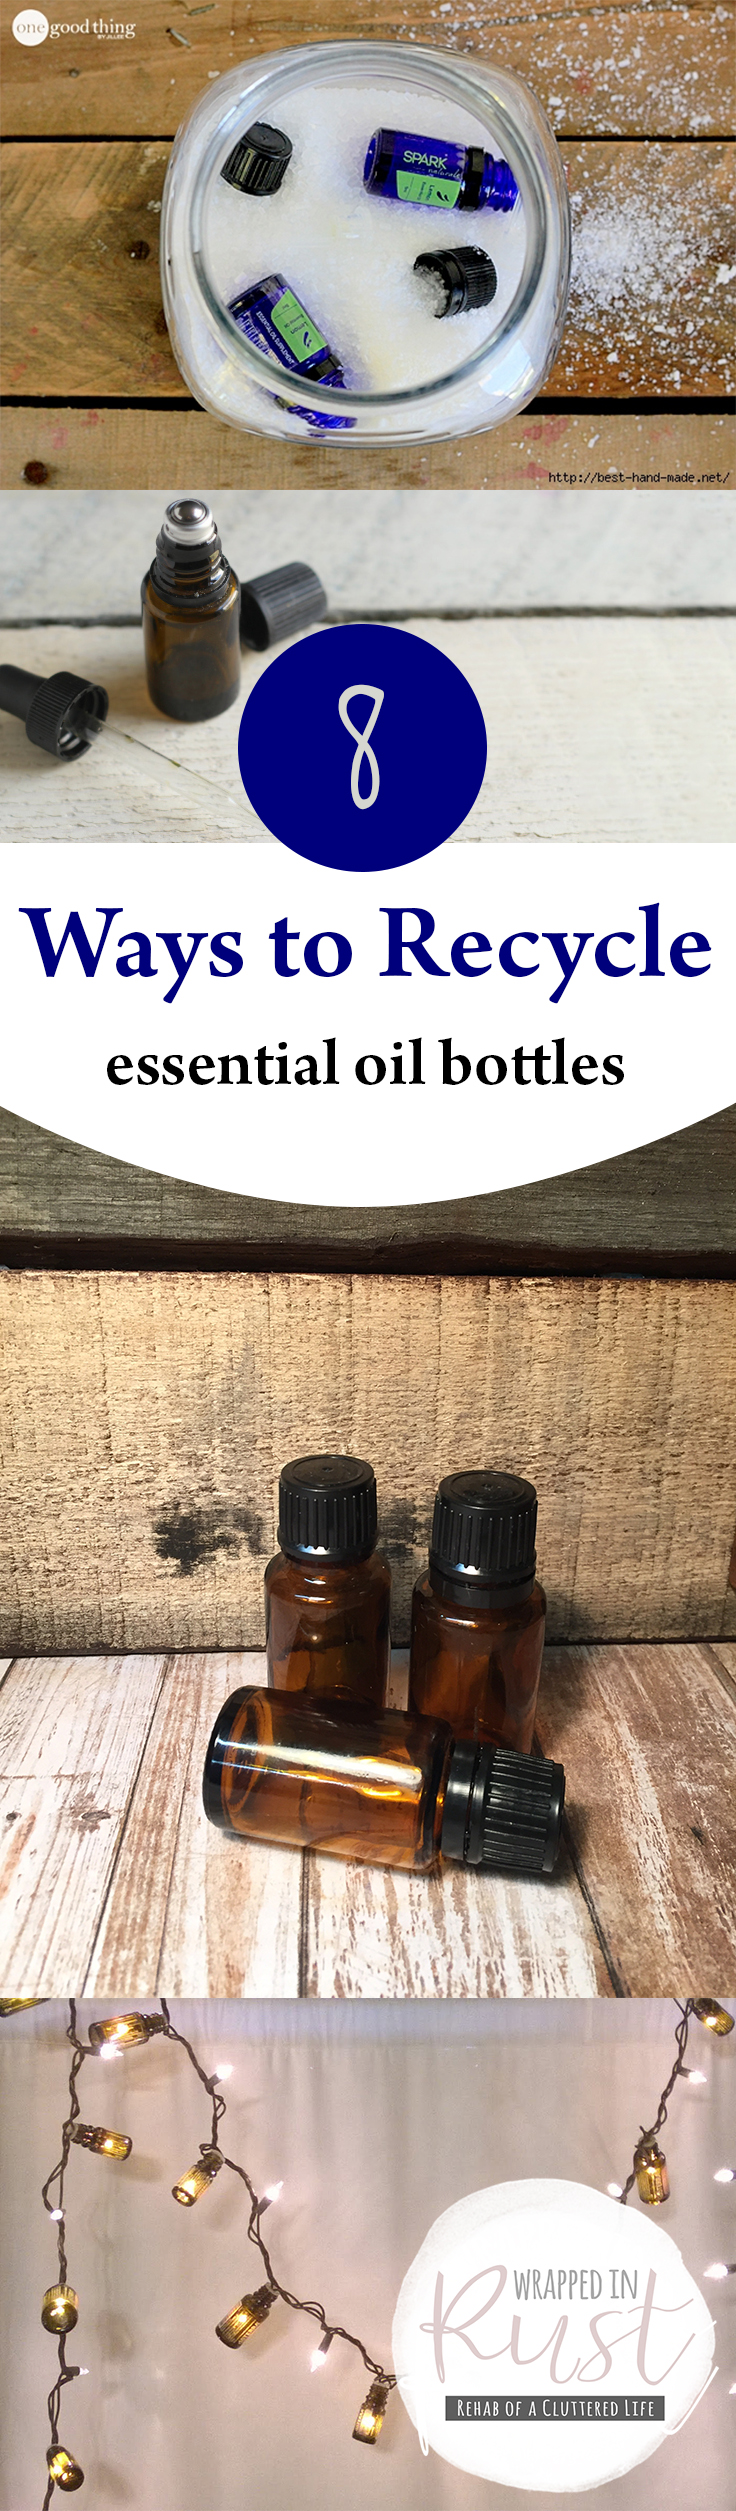 Essential Oils, Essential Oil Bottles, Things to Do With Old Essential Oil Bottles, How to Reuse Essential Oil Bottles, Repurpose Essential Oil Bottles, How to Recycle Essential Oil Bottles, Popular Pin